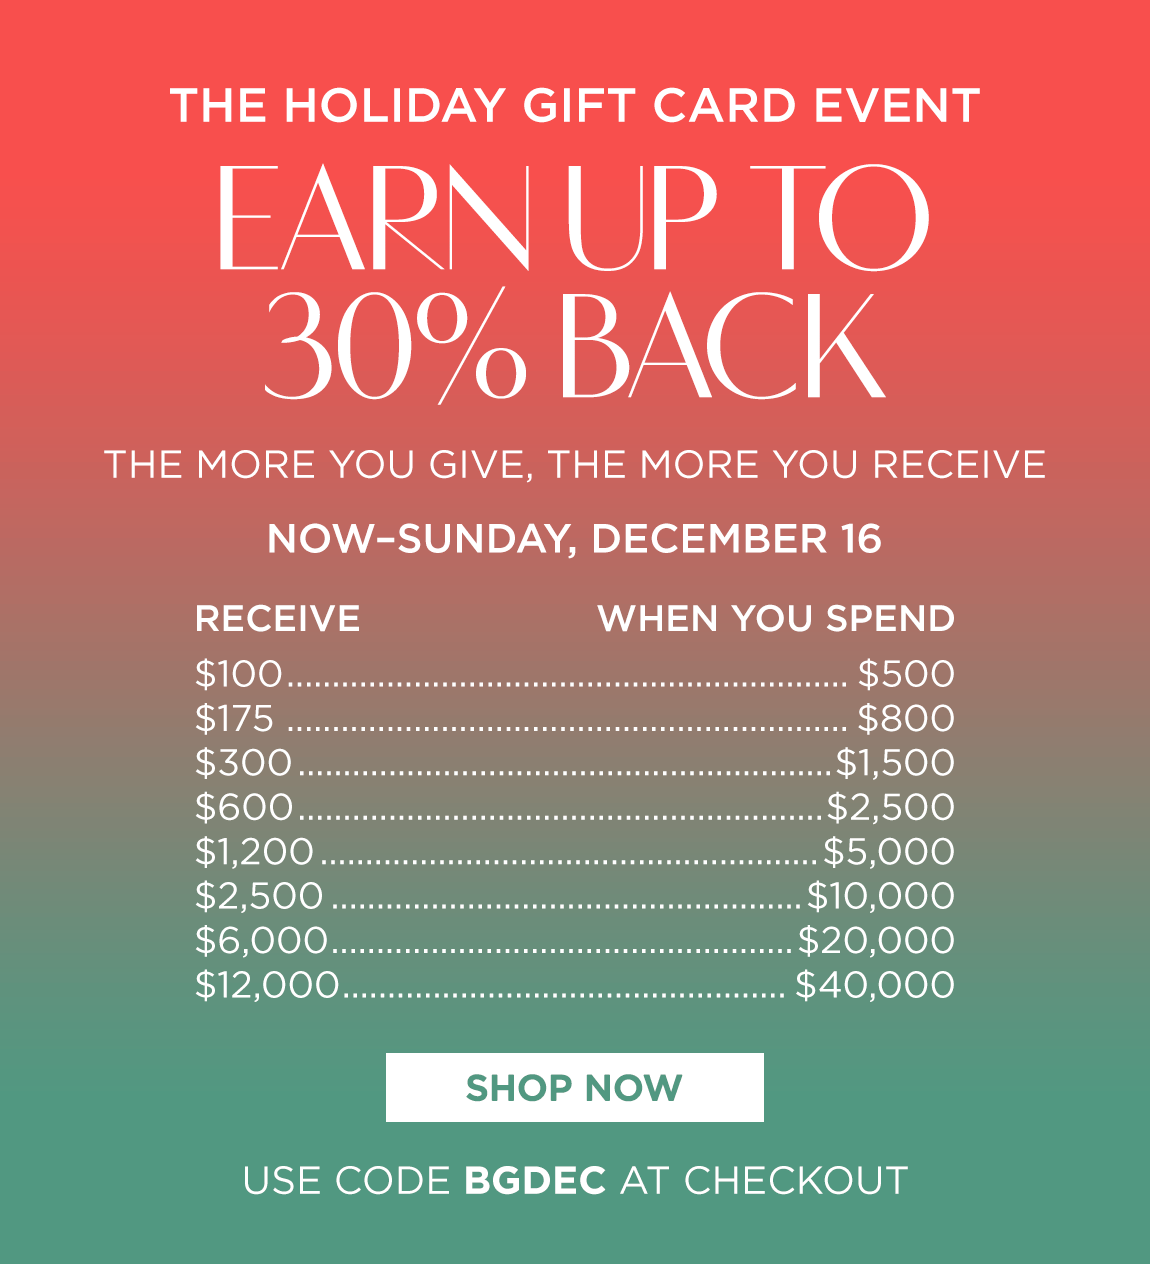 The Holiday Gift Card Event